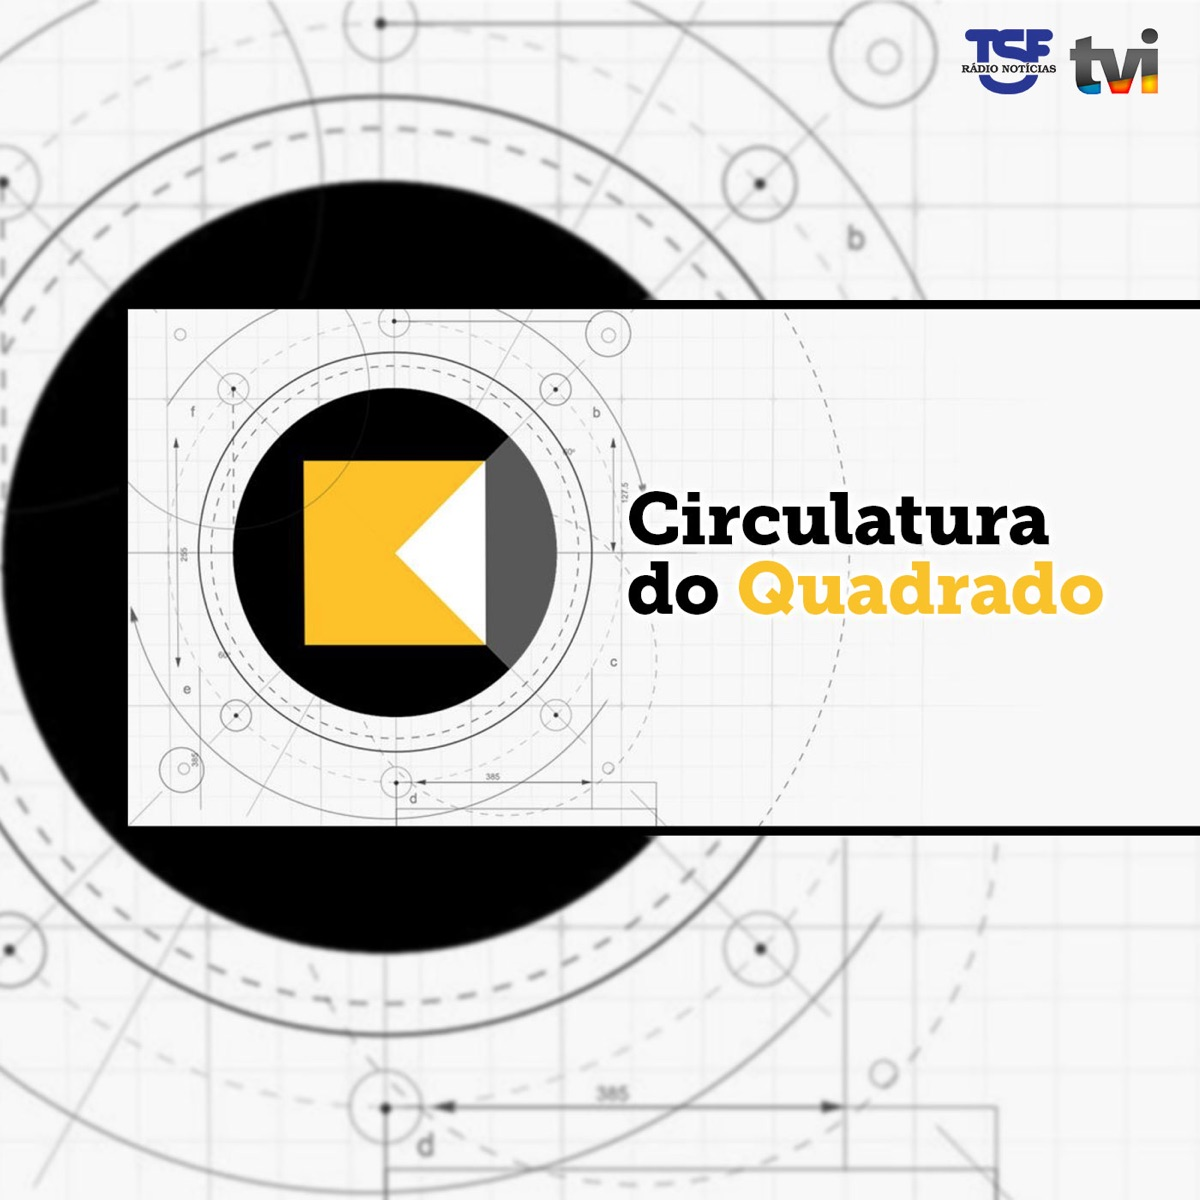 Circulatura do Quadrado - 27 de Maio 2020